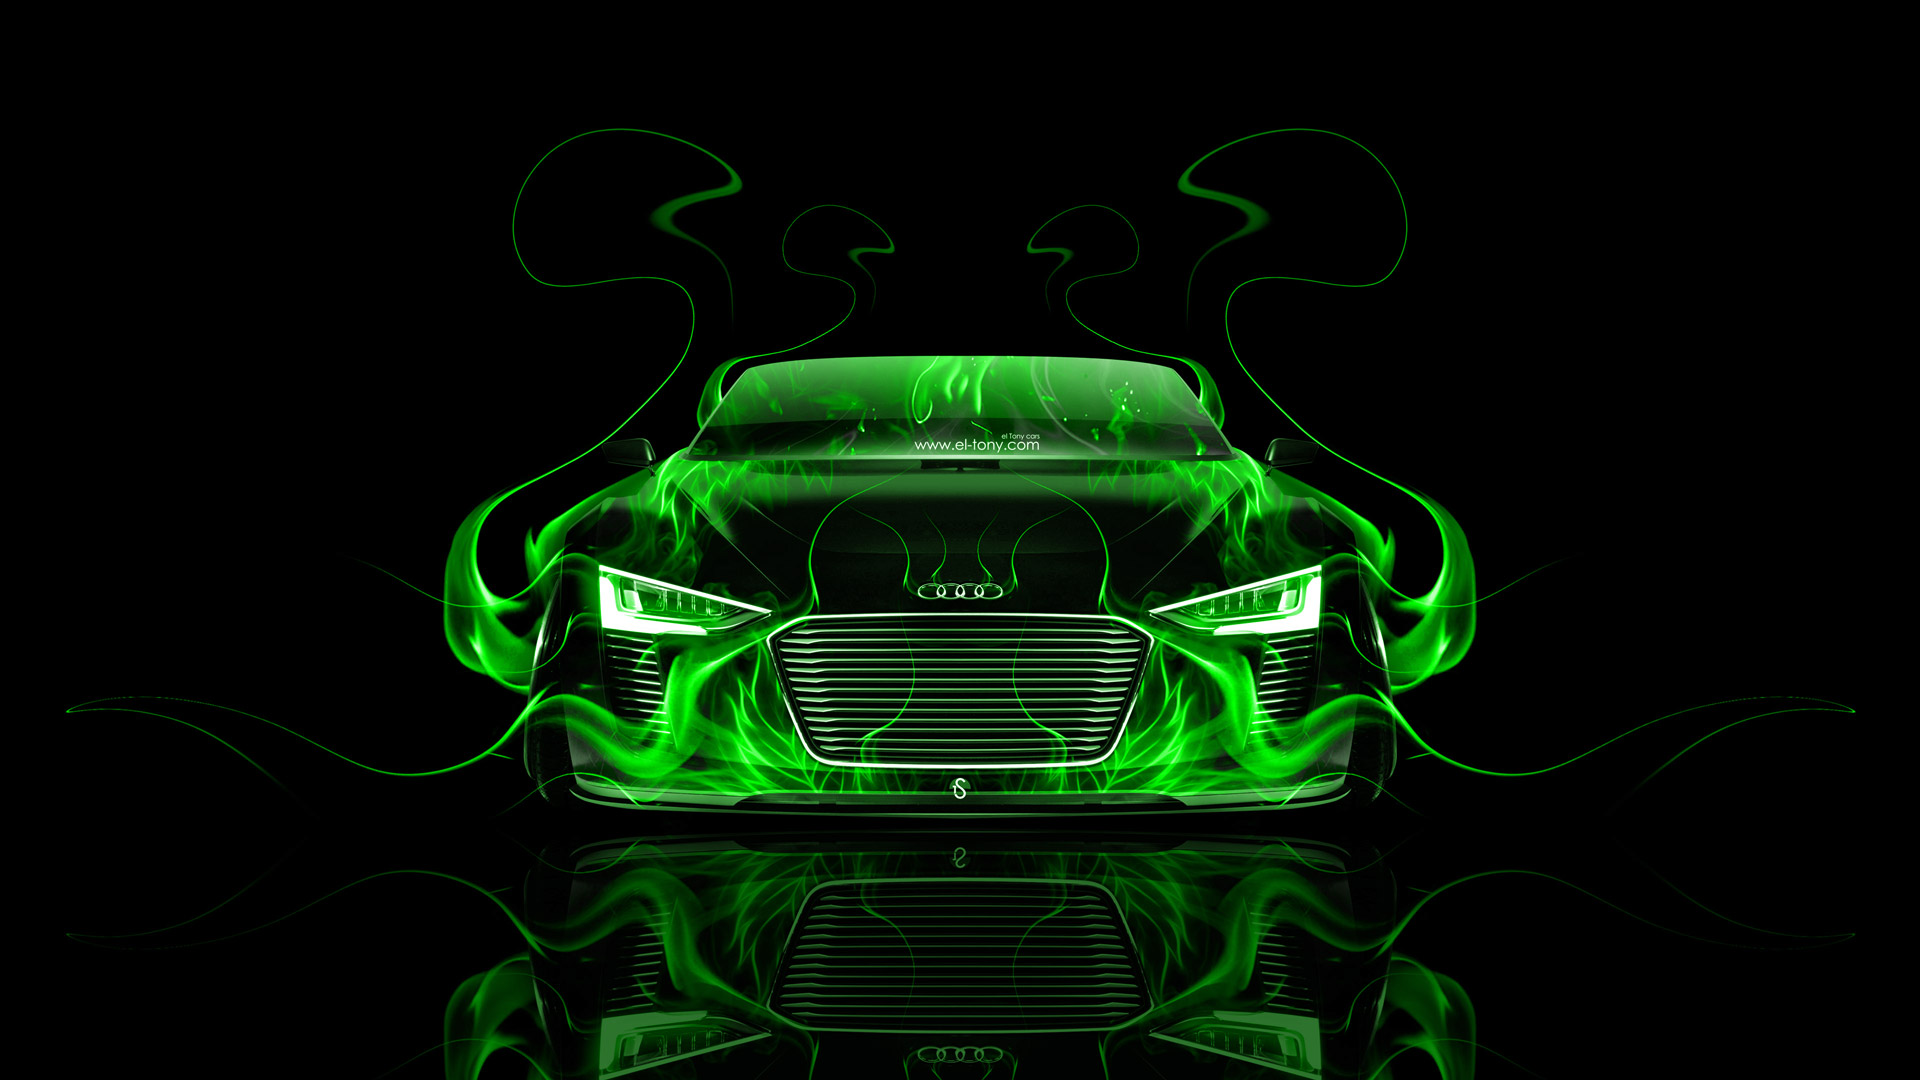 TRON LEGACY Light Car Wallpapers